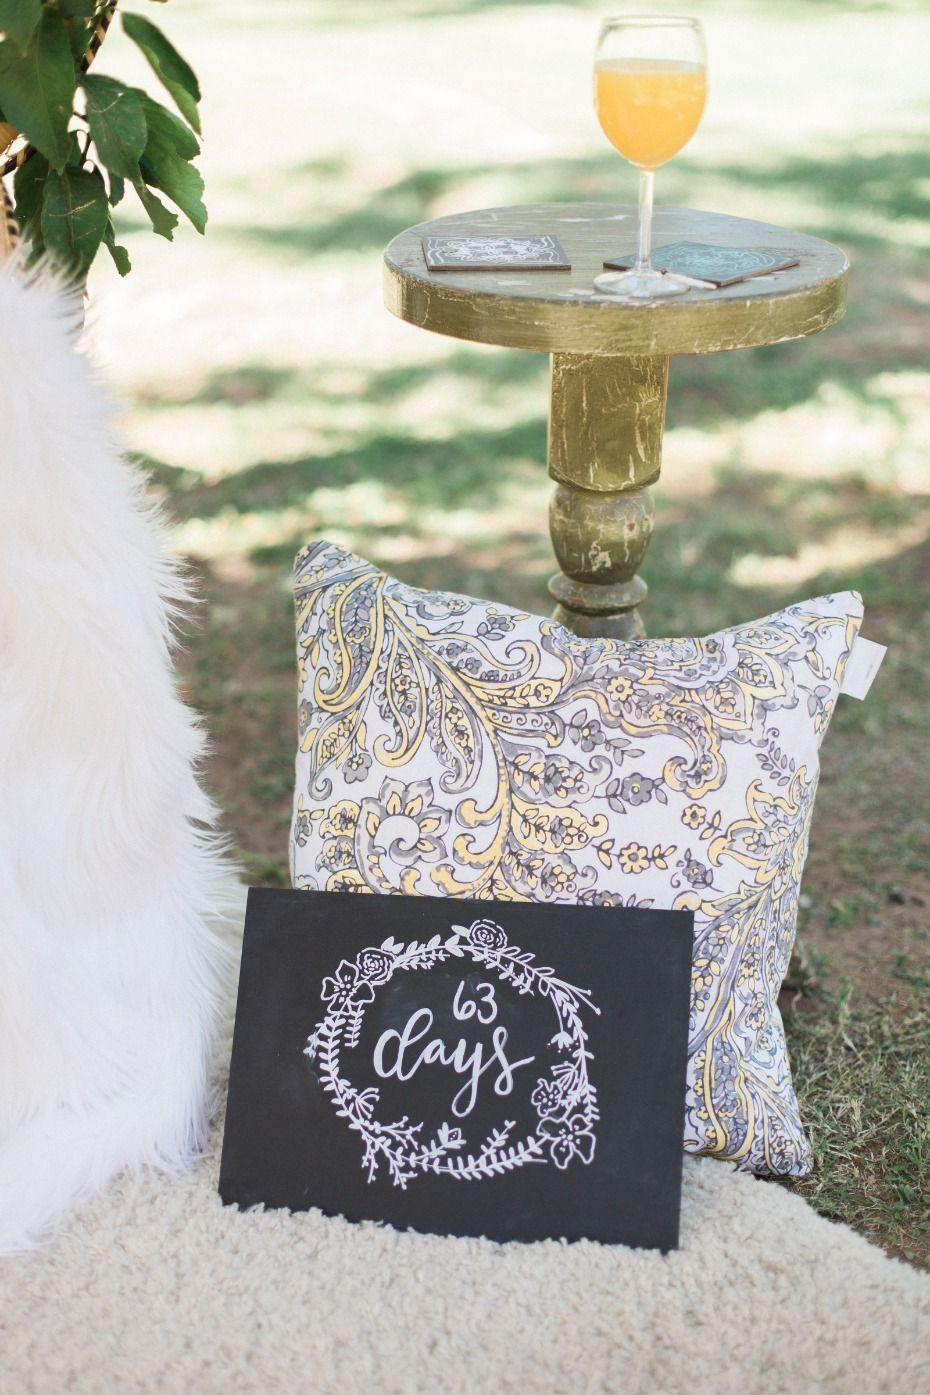 Getting married sign idea for a bridal shower